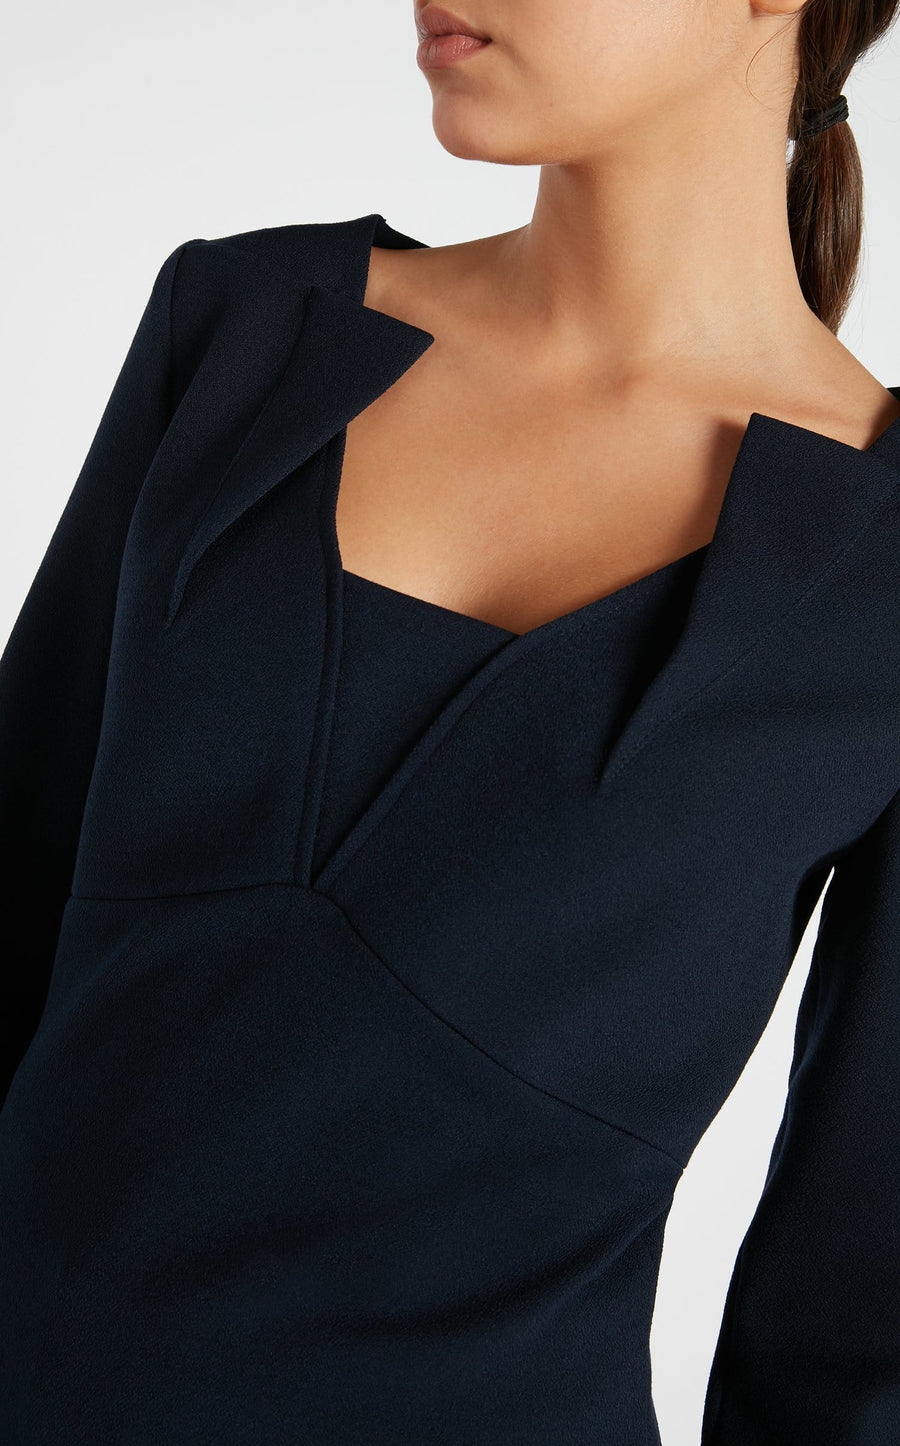 Strand Top In Navy from Roland Mouret